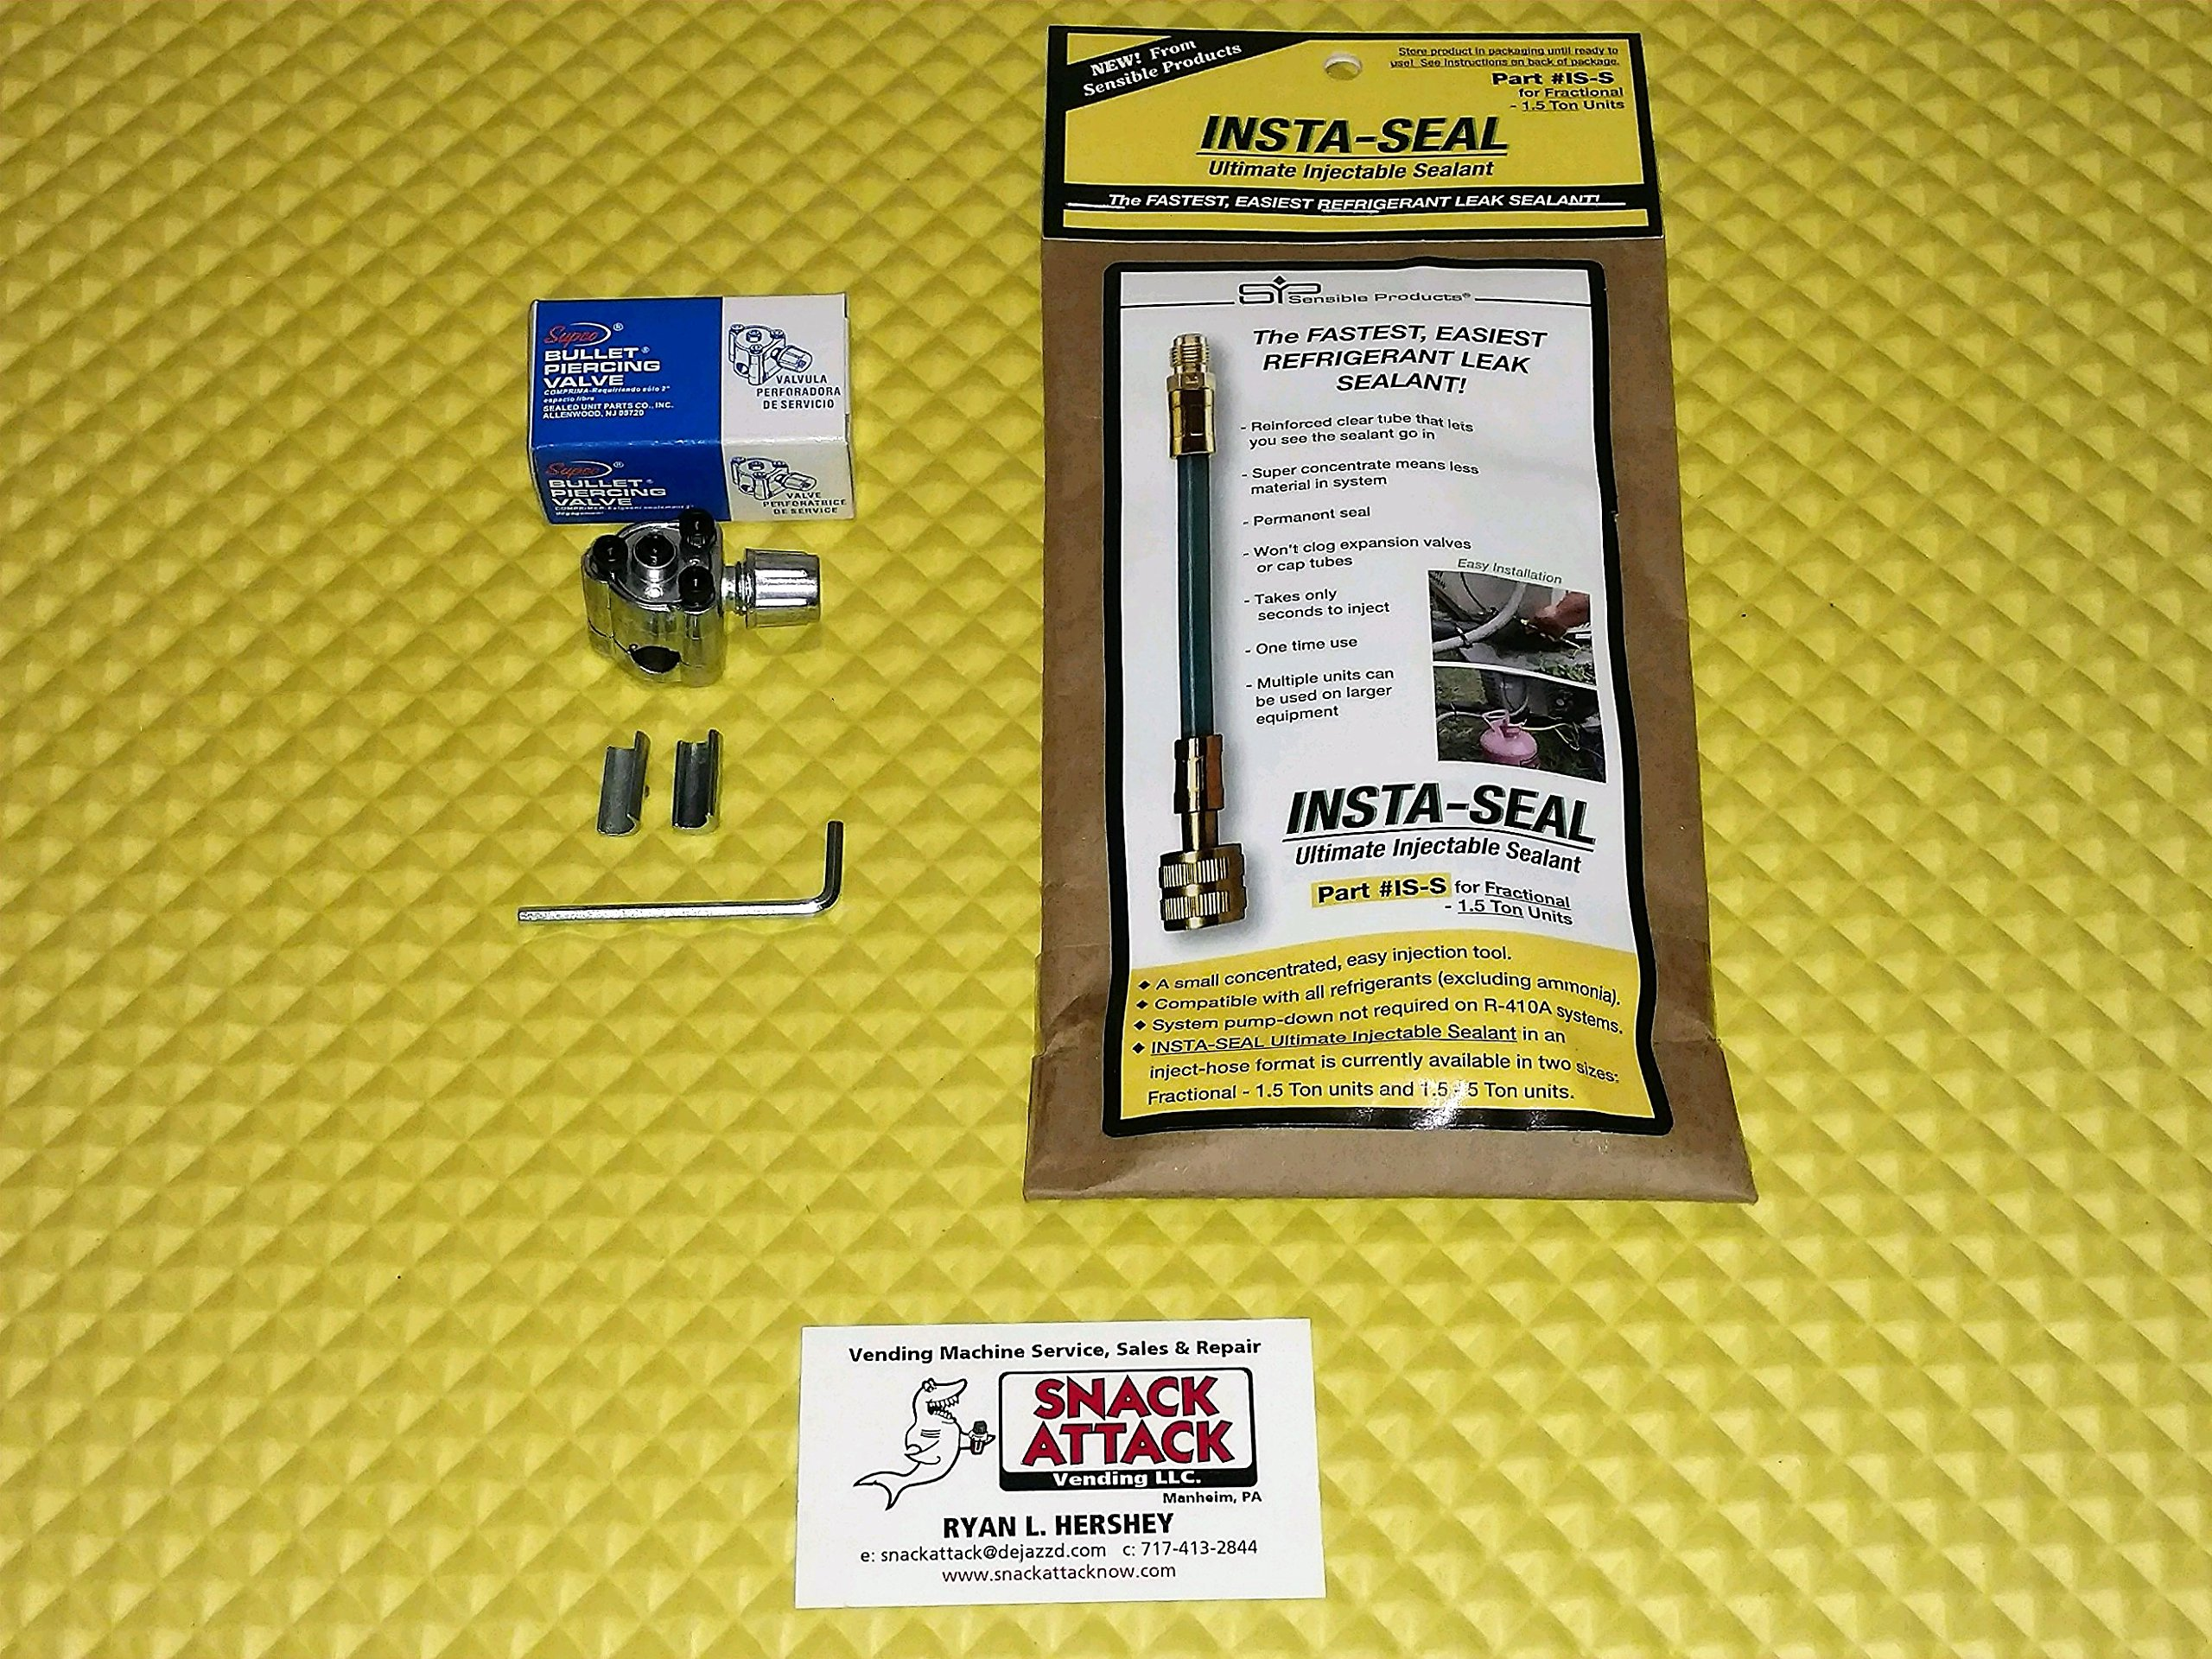 DIXIE NARCO,VENDO,FSI&USI-Compressor INSTA - SEAL Ultimate Injectable Sealant!